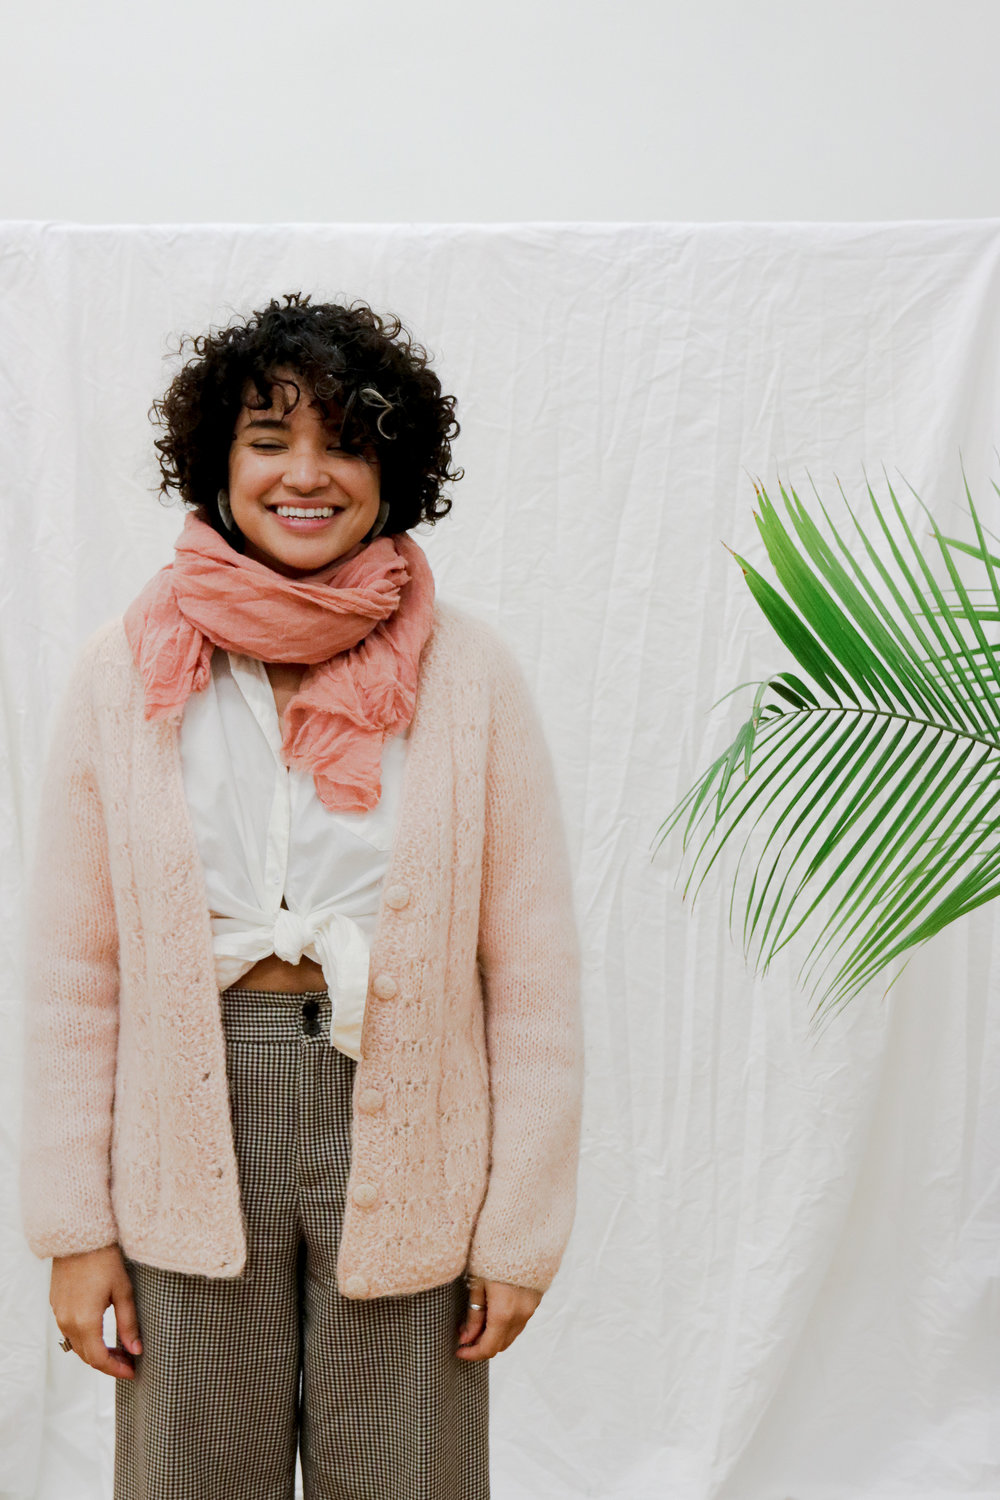 Naturally Dyed Wool Gauze Scarf in Coral Rosemarine Textiles - $120